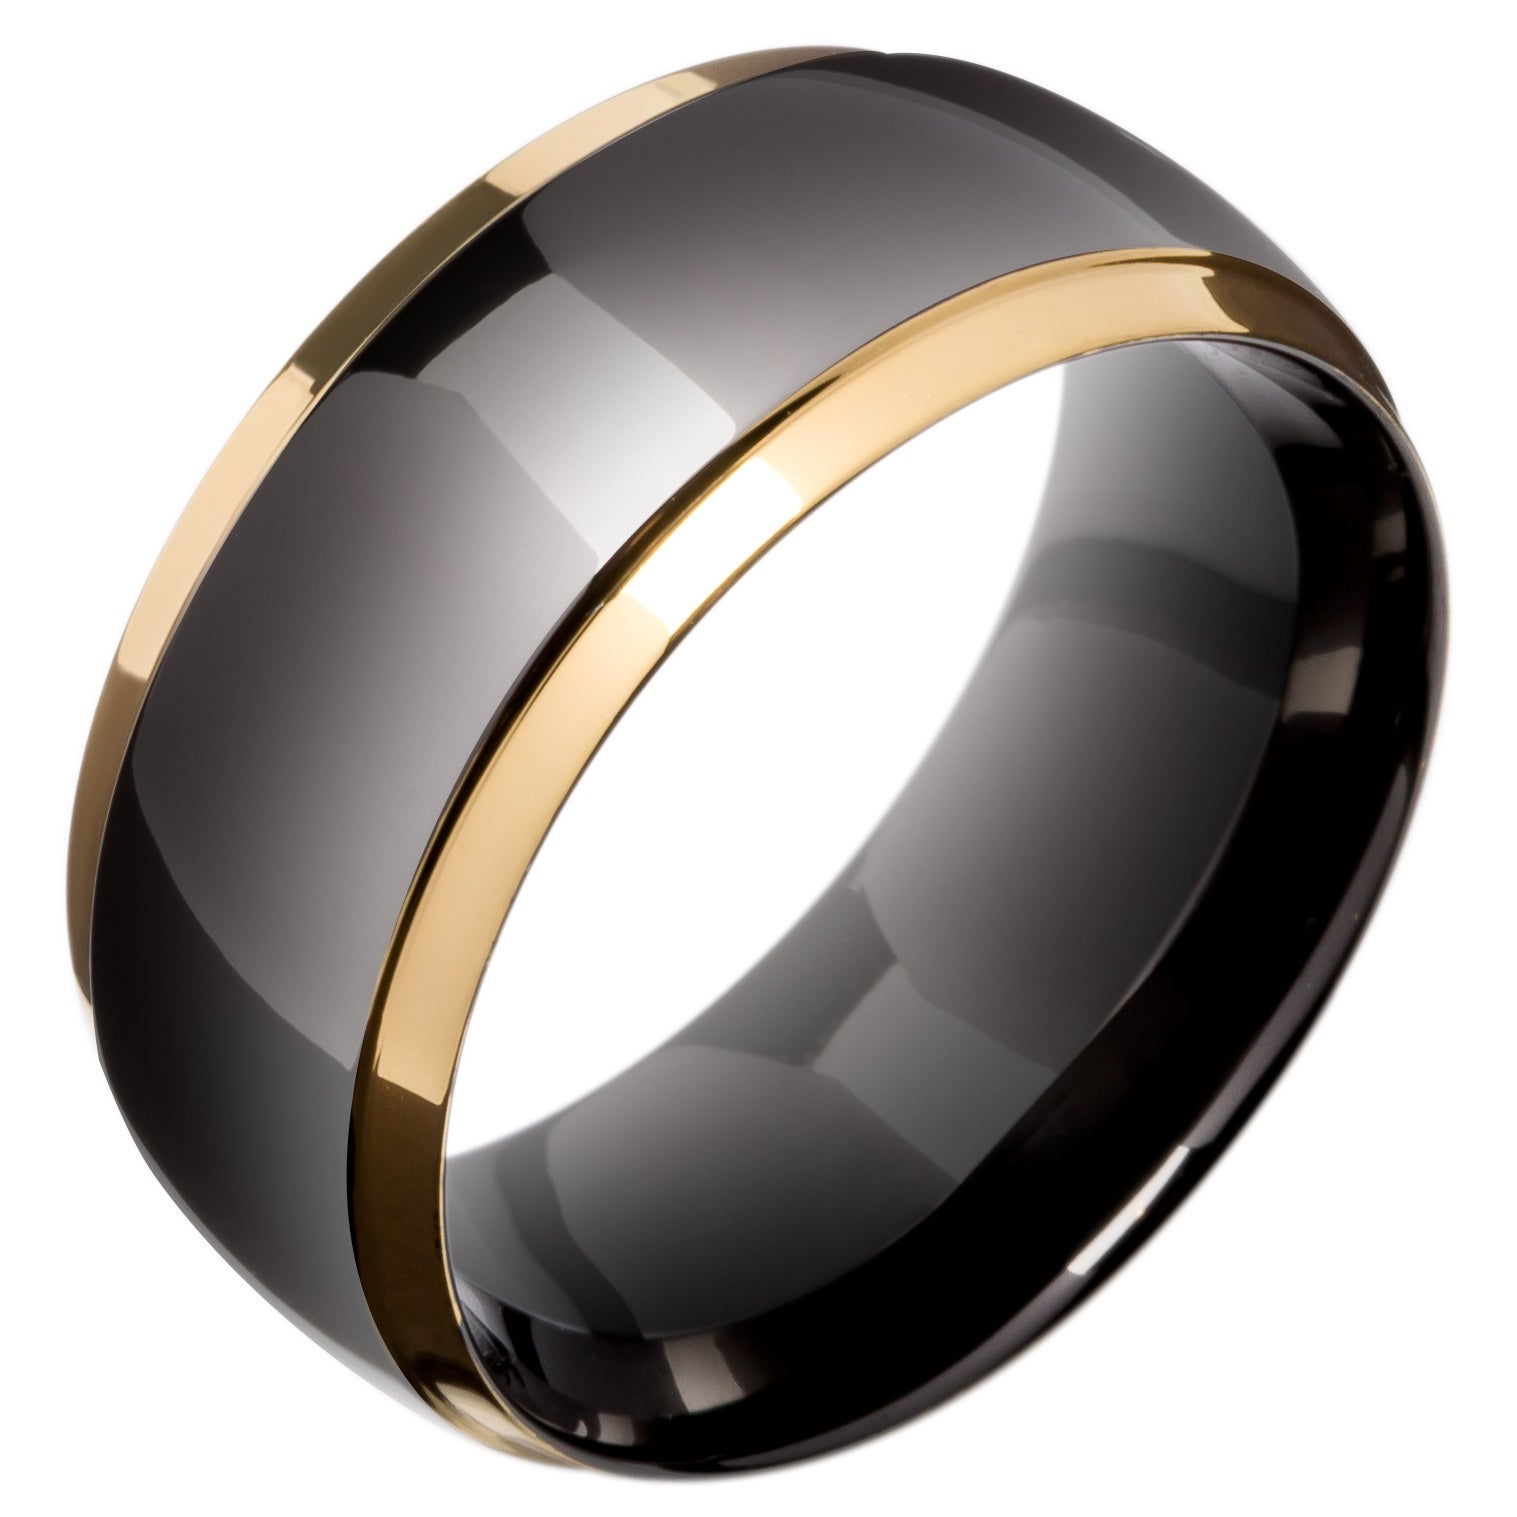 hills wedding inspirational and black gold band bands luxury great graphics rings of ashworthmairsgroup